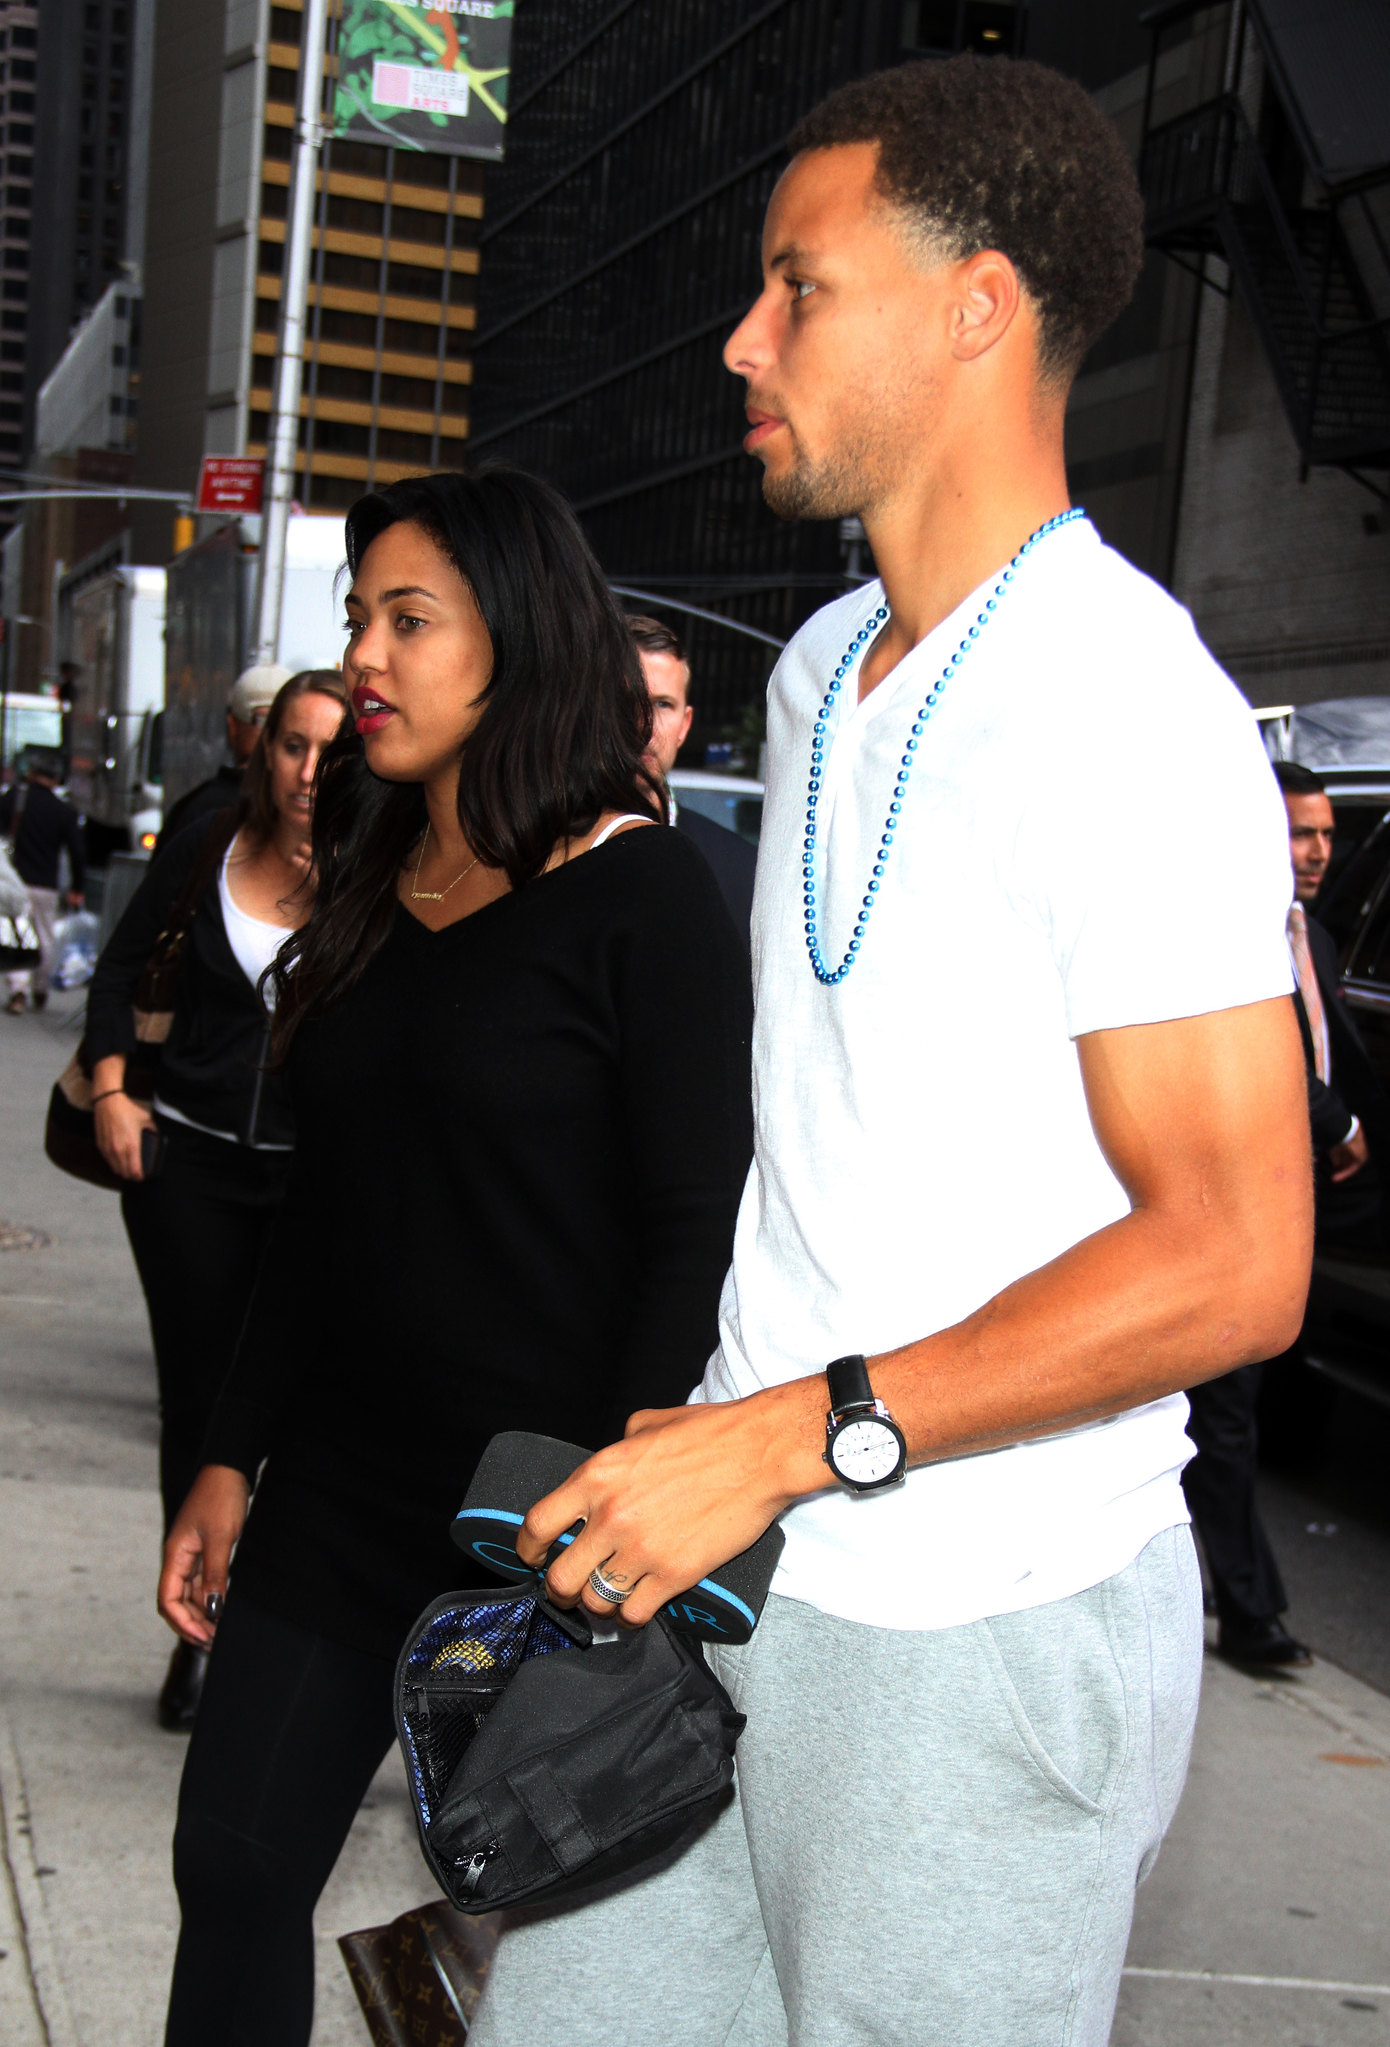 stephen curry arrives to the late show with steve colbert 92115 - Stephen Curry Wedding Ring